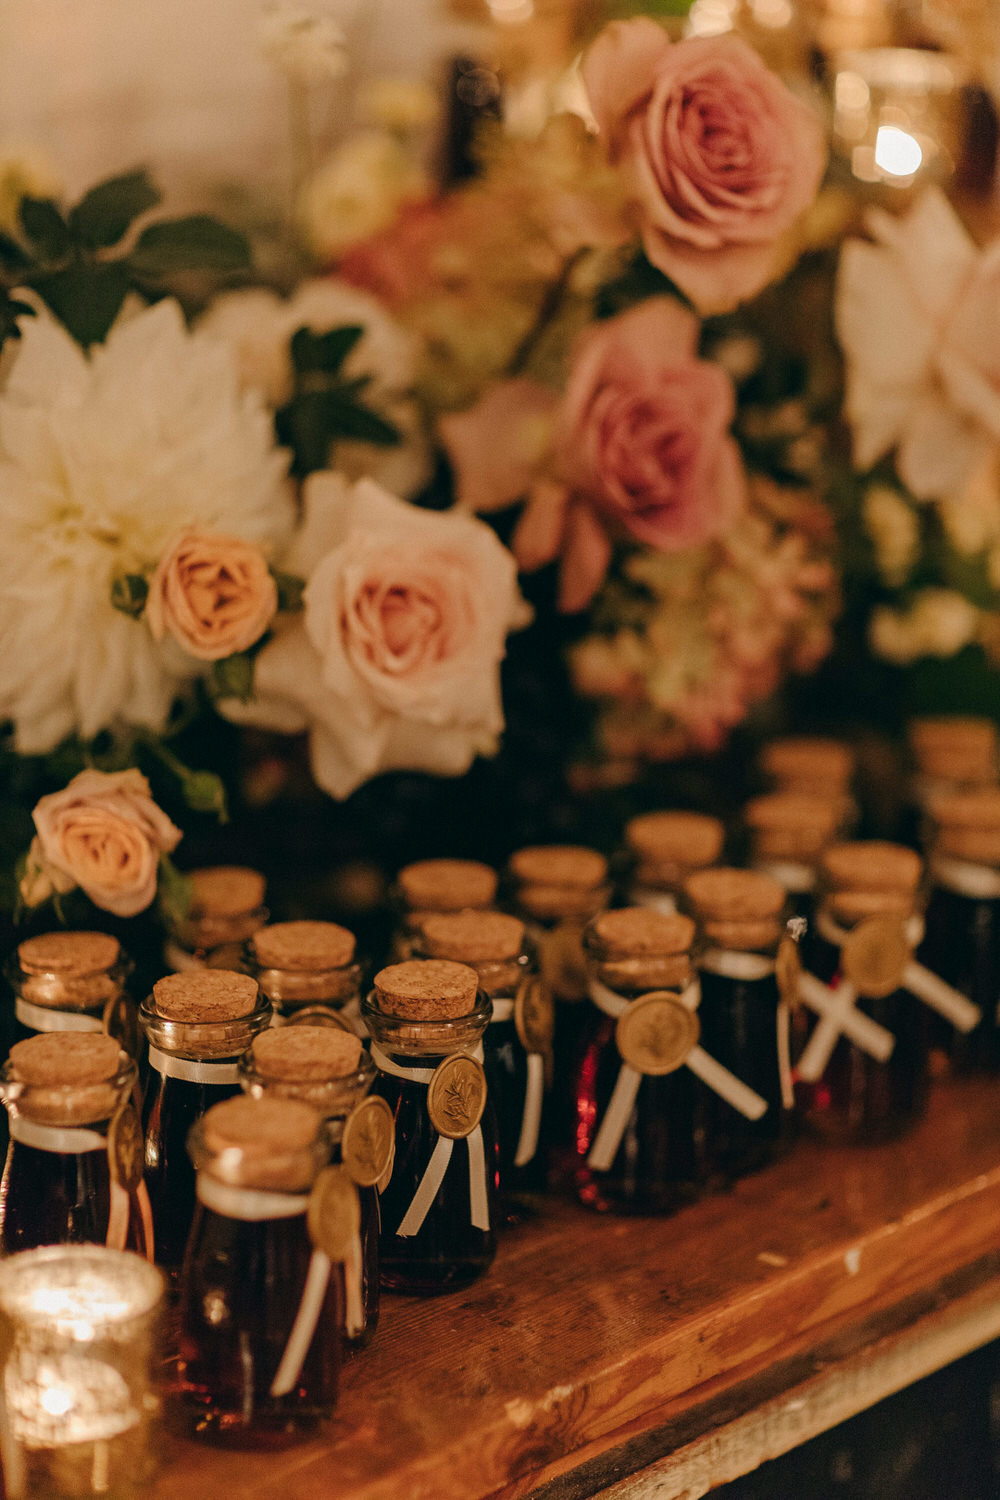 burroughes-building-wedding-toronto-christine-lim-photography-blush-and-bowties-081